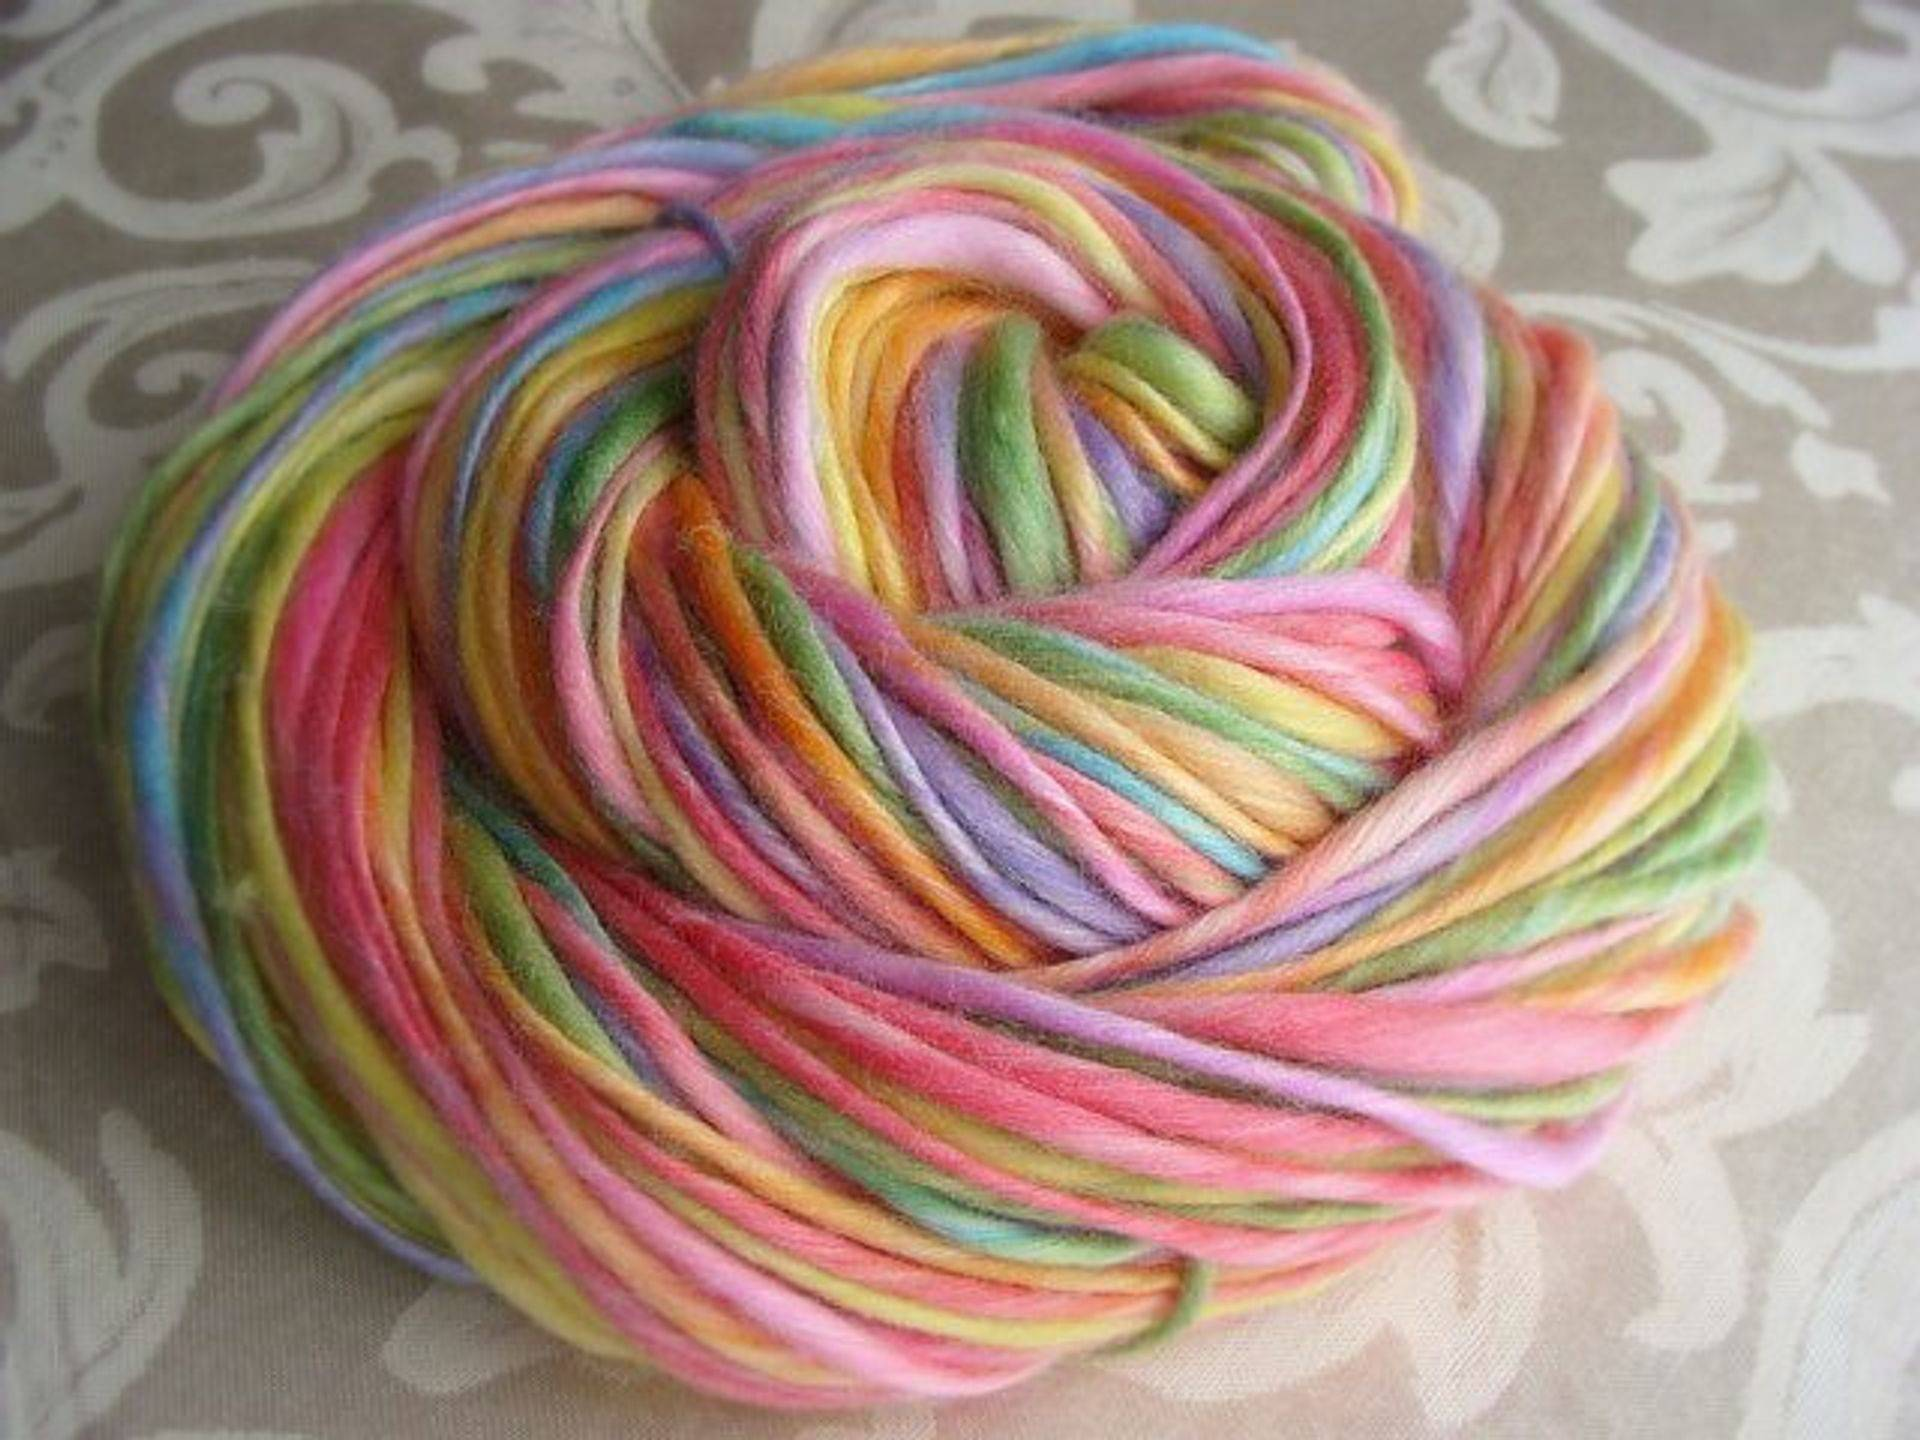 Handspun Rainbow Yarn